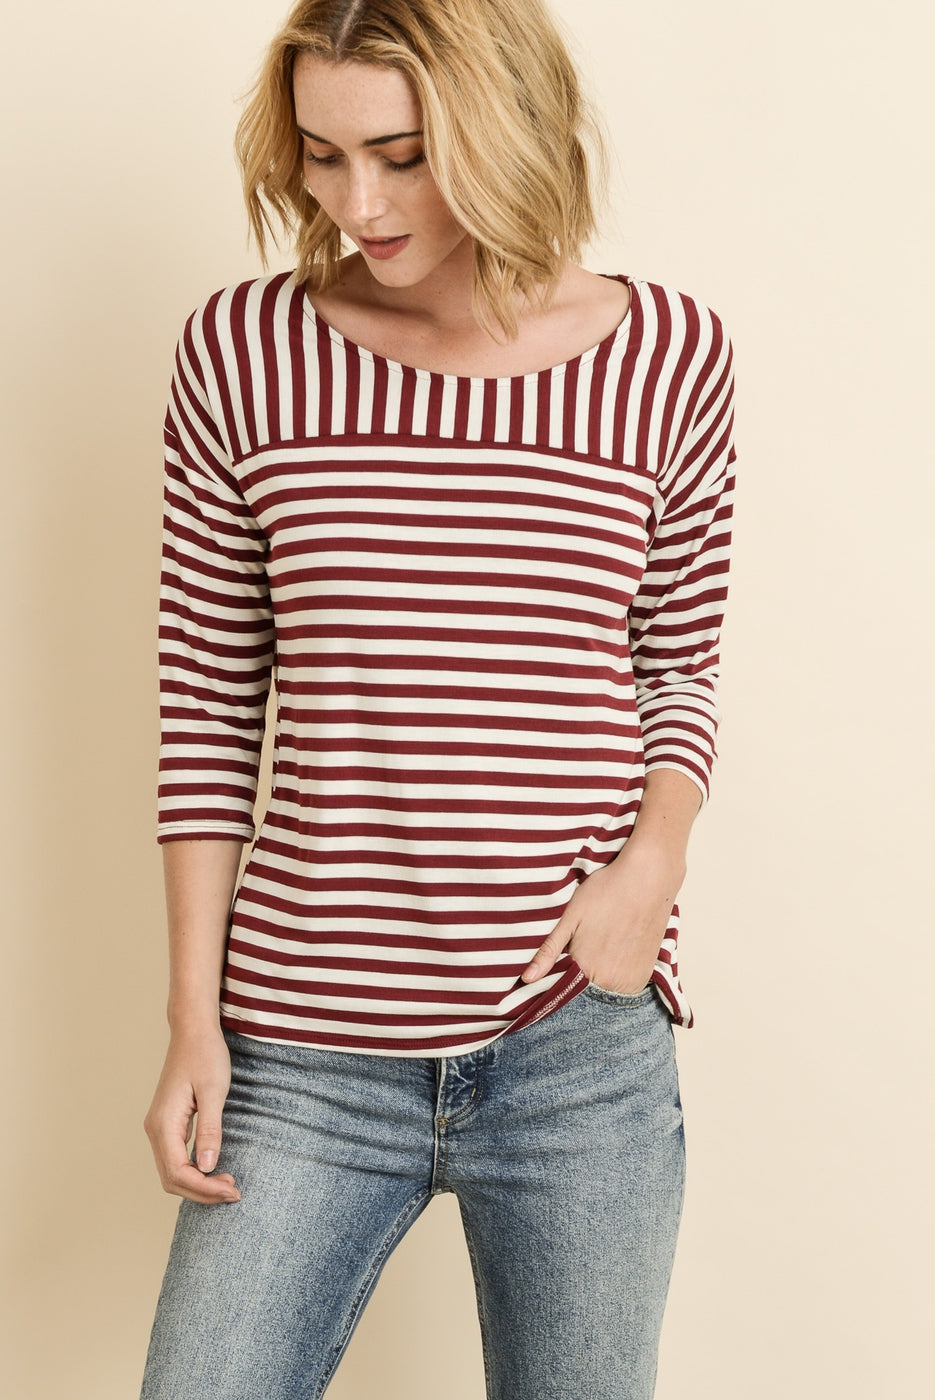 Striped 3/4 Sleeves Top VLW109